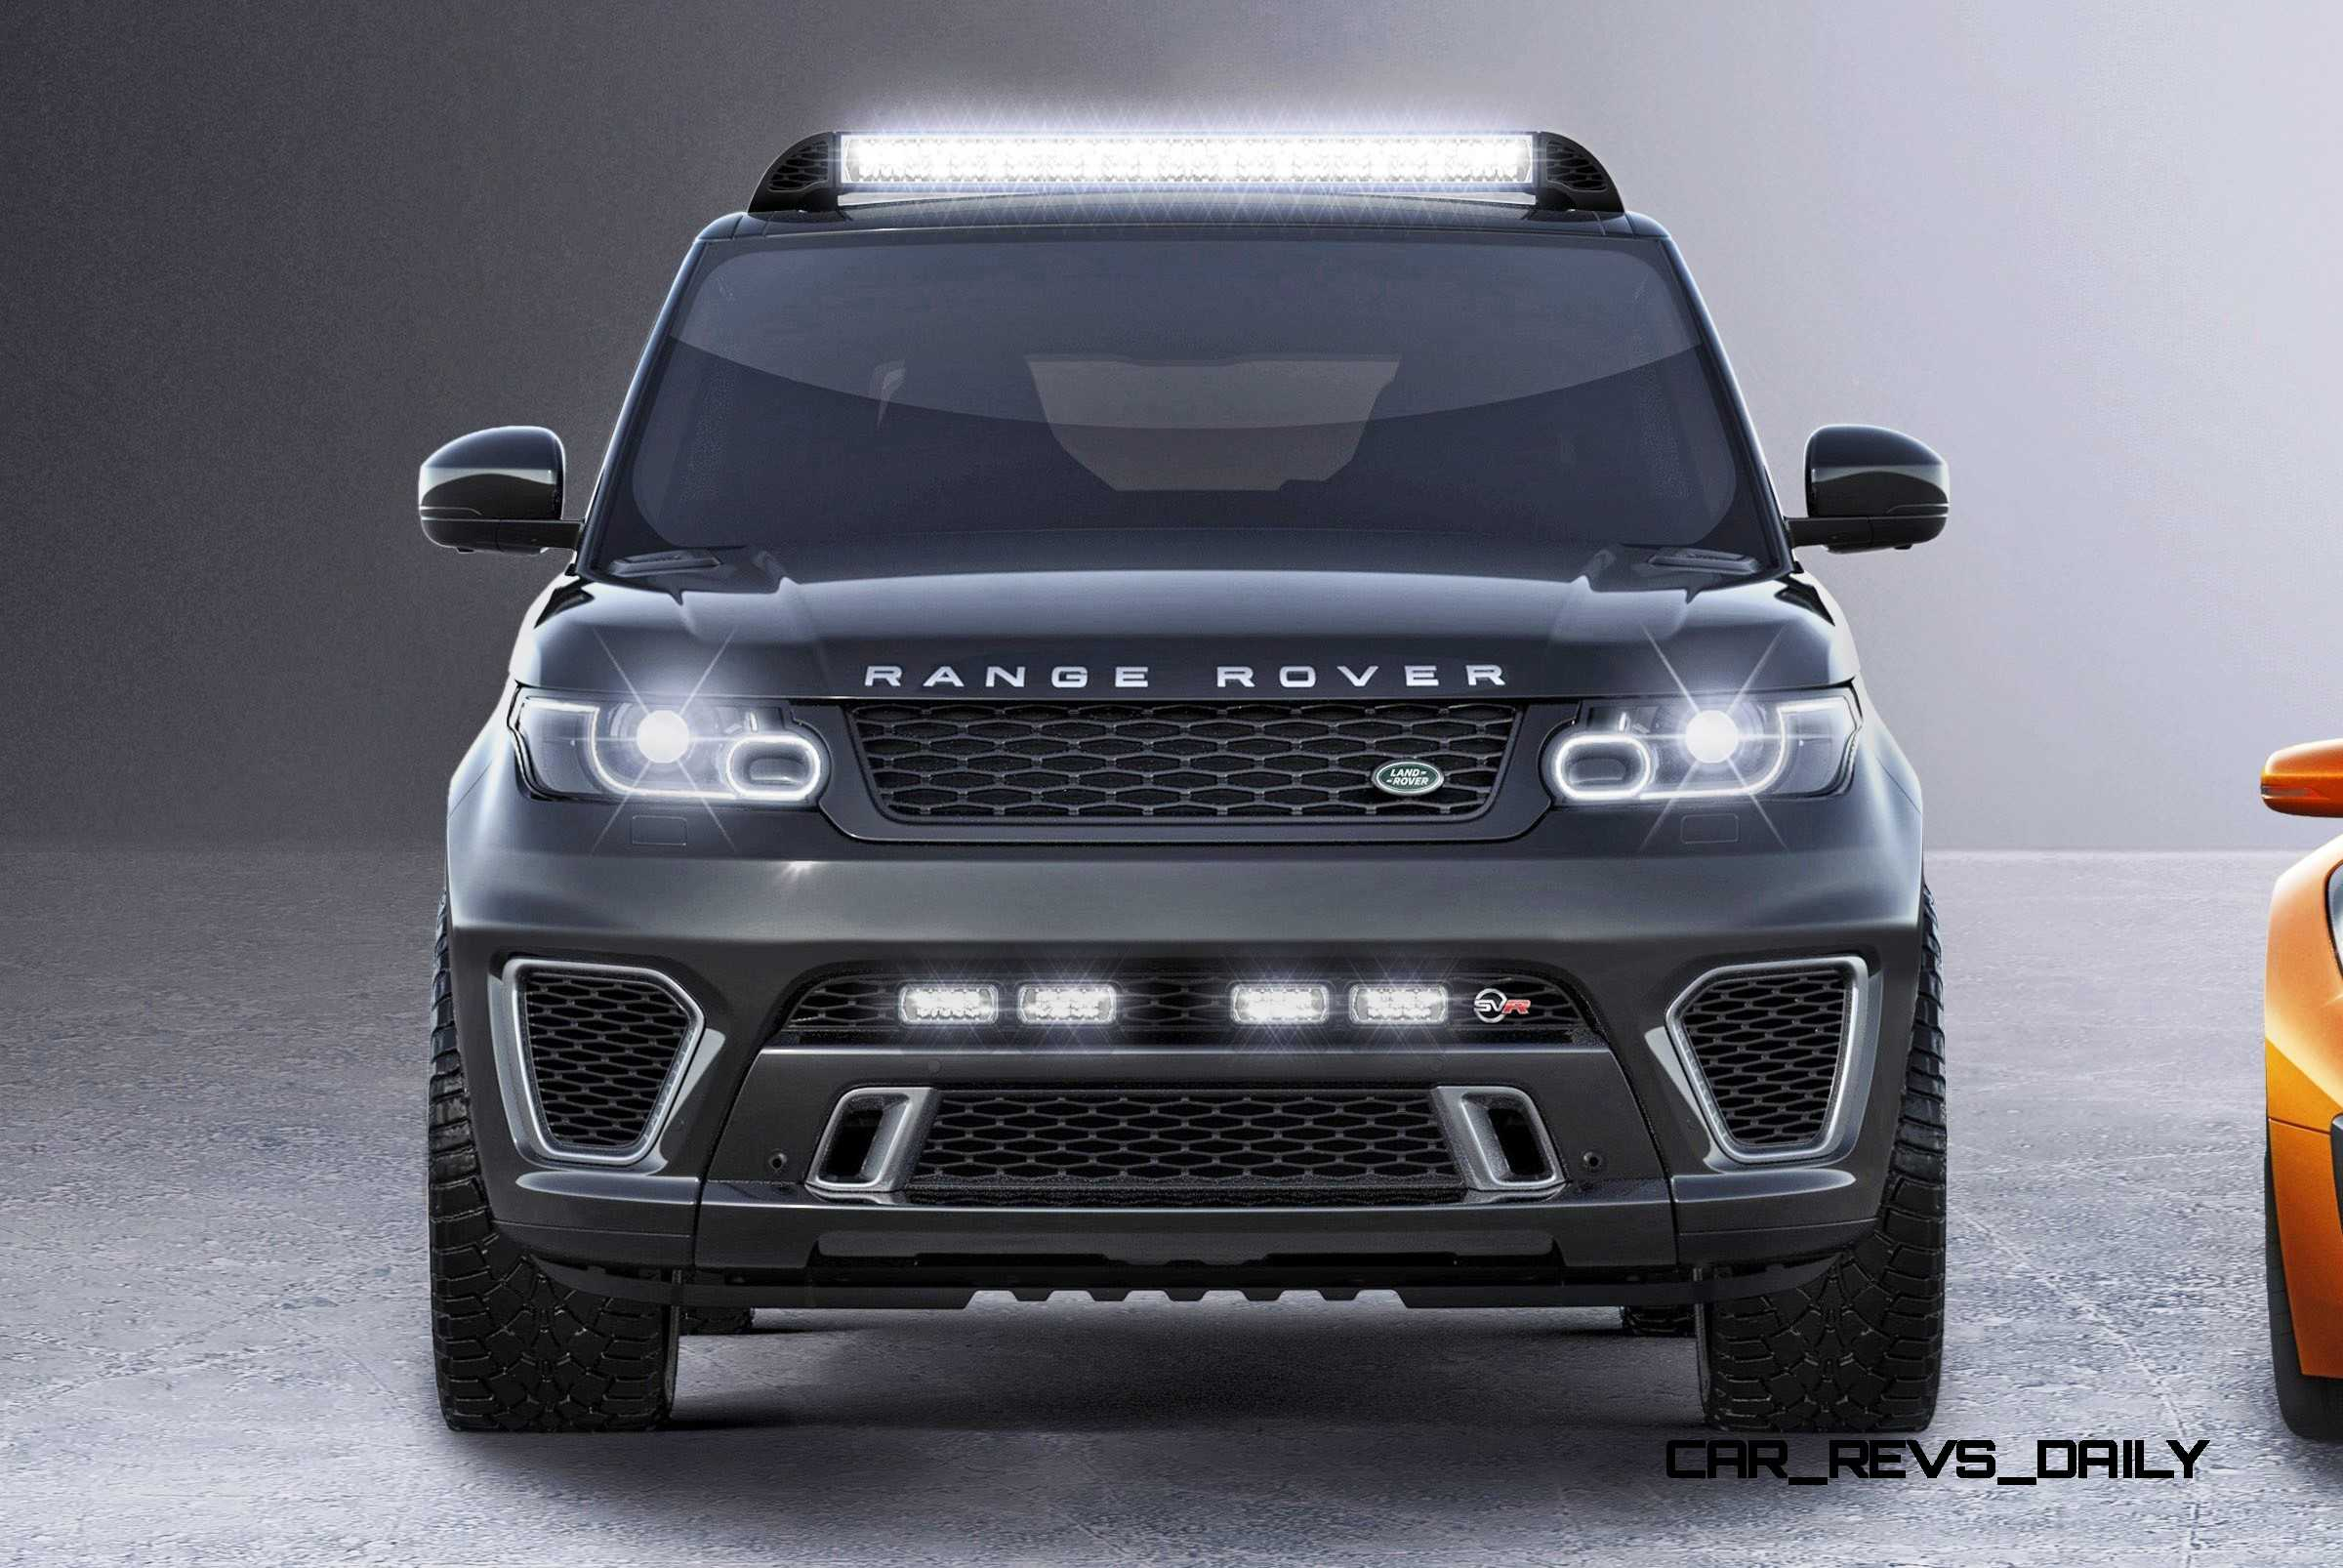 Jaguar Land Rover 007 Spectre Cars